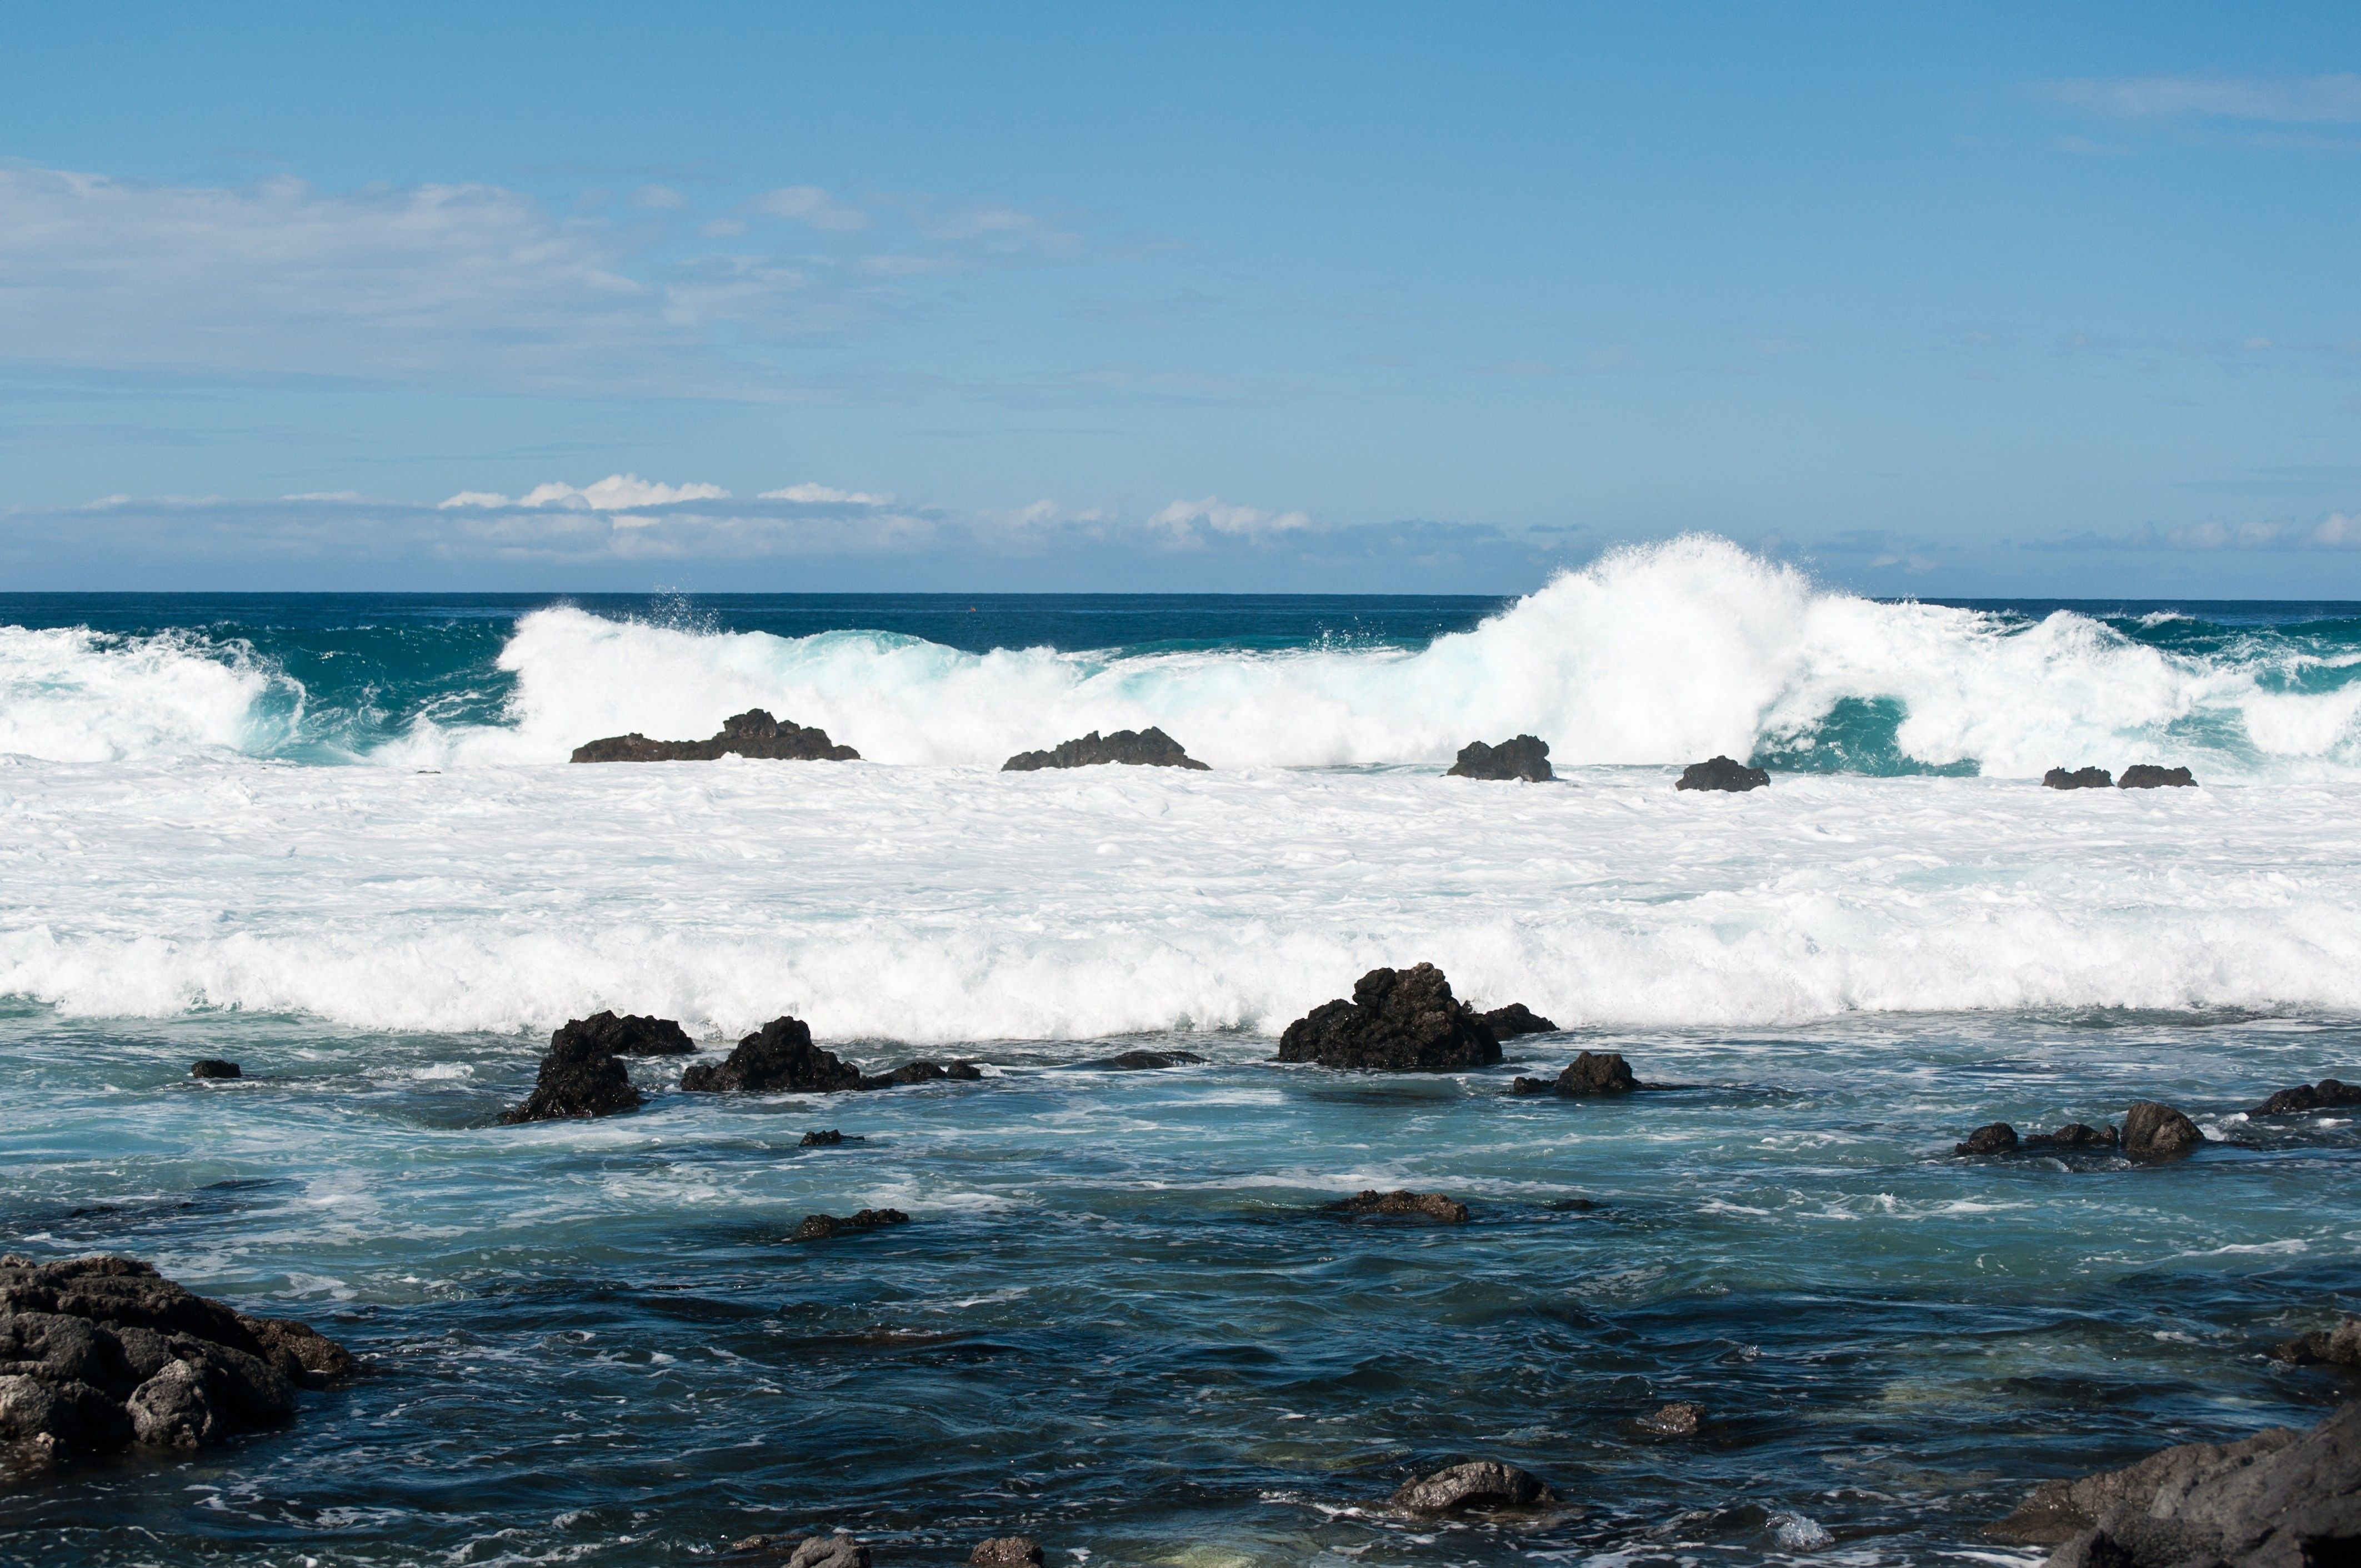 Rocks rise above the waterline in Hawaii.